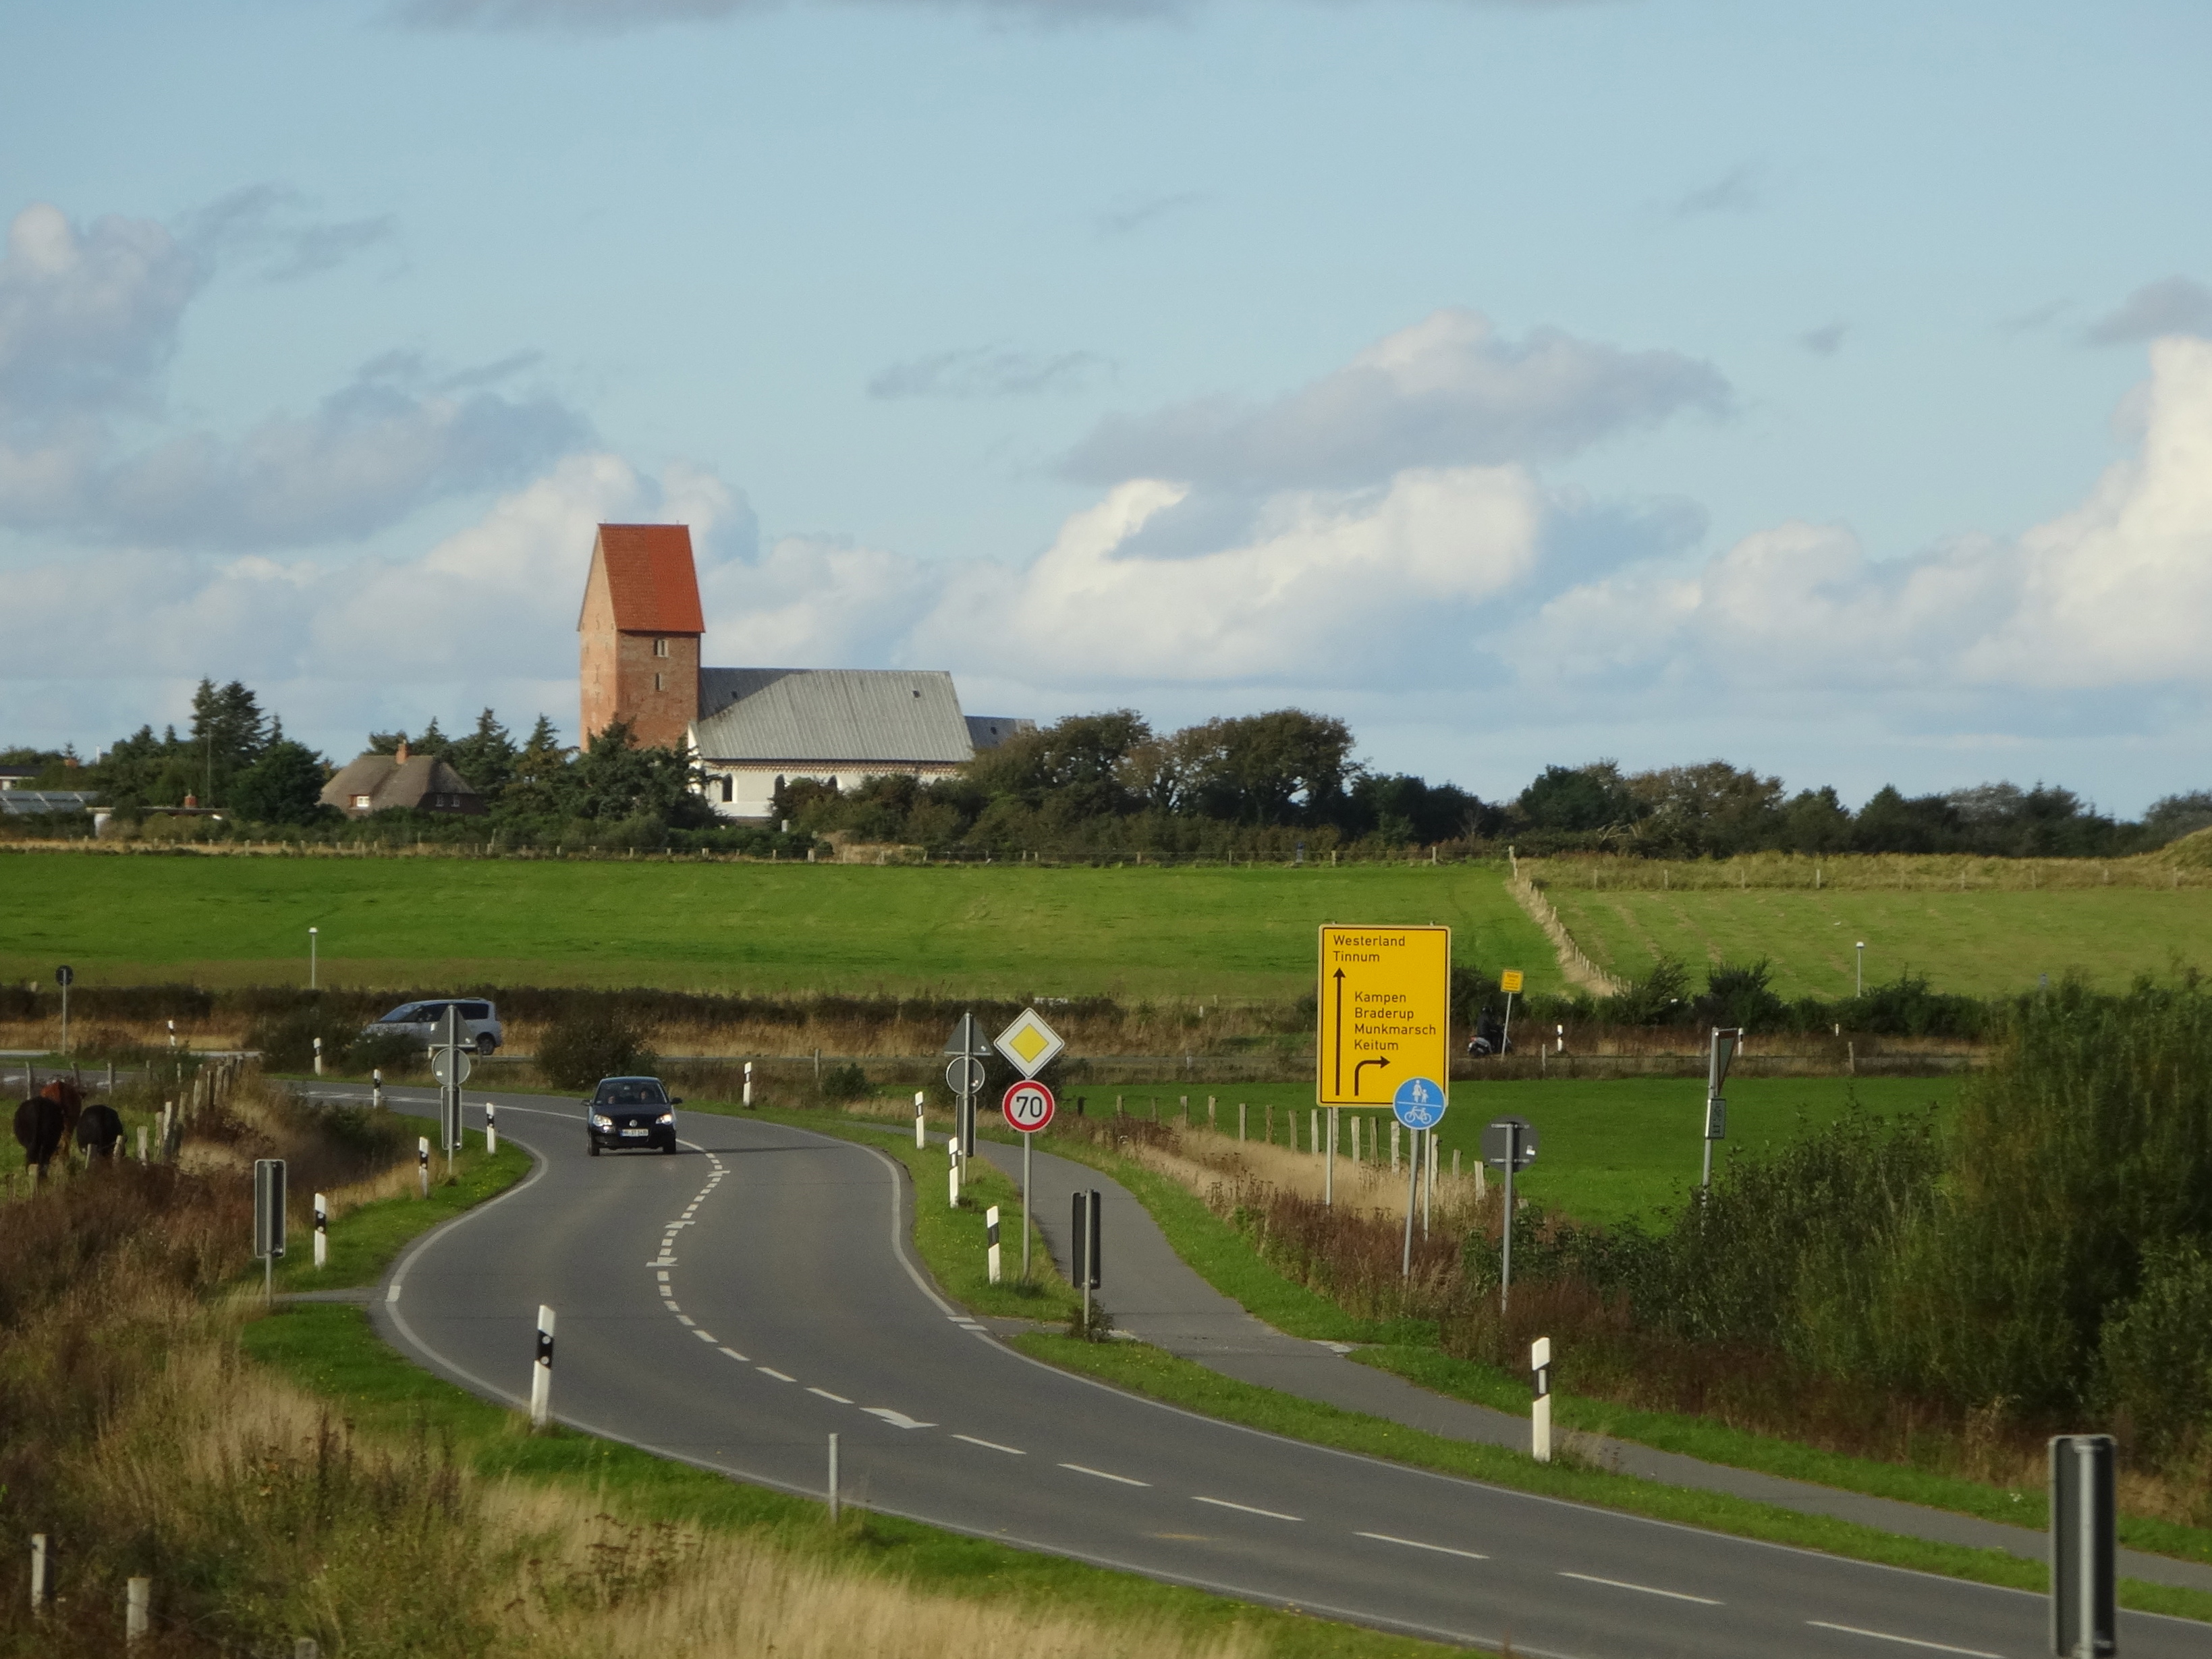 Keitum's famous church, Sylt